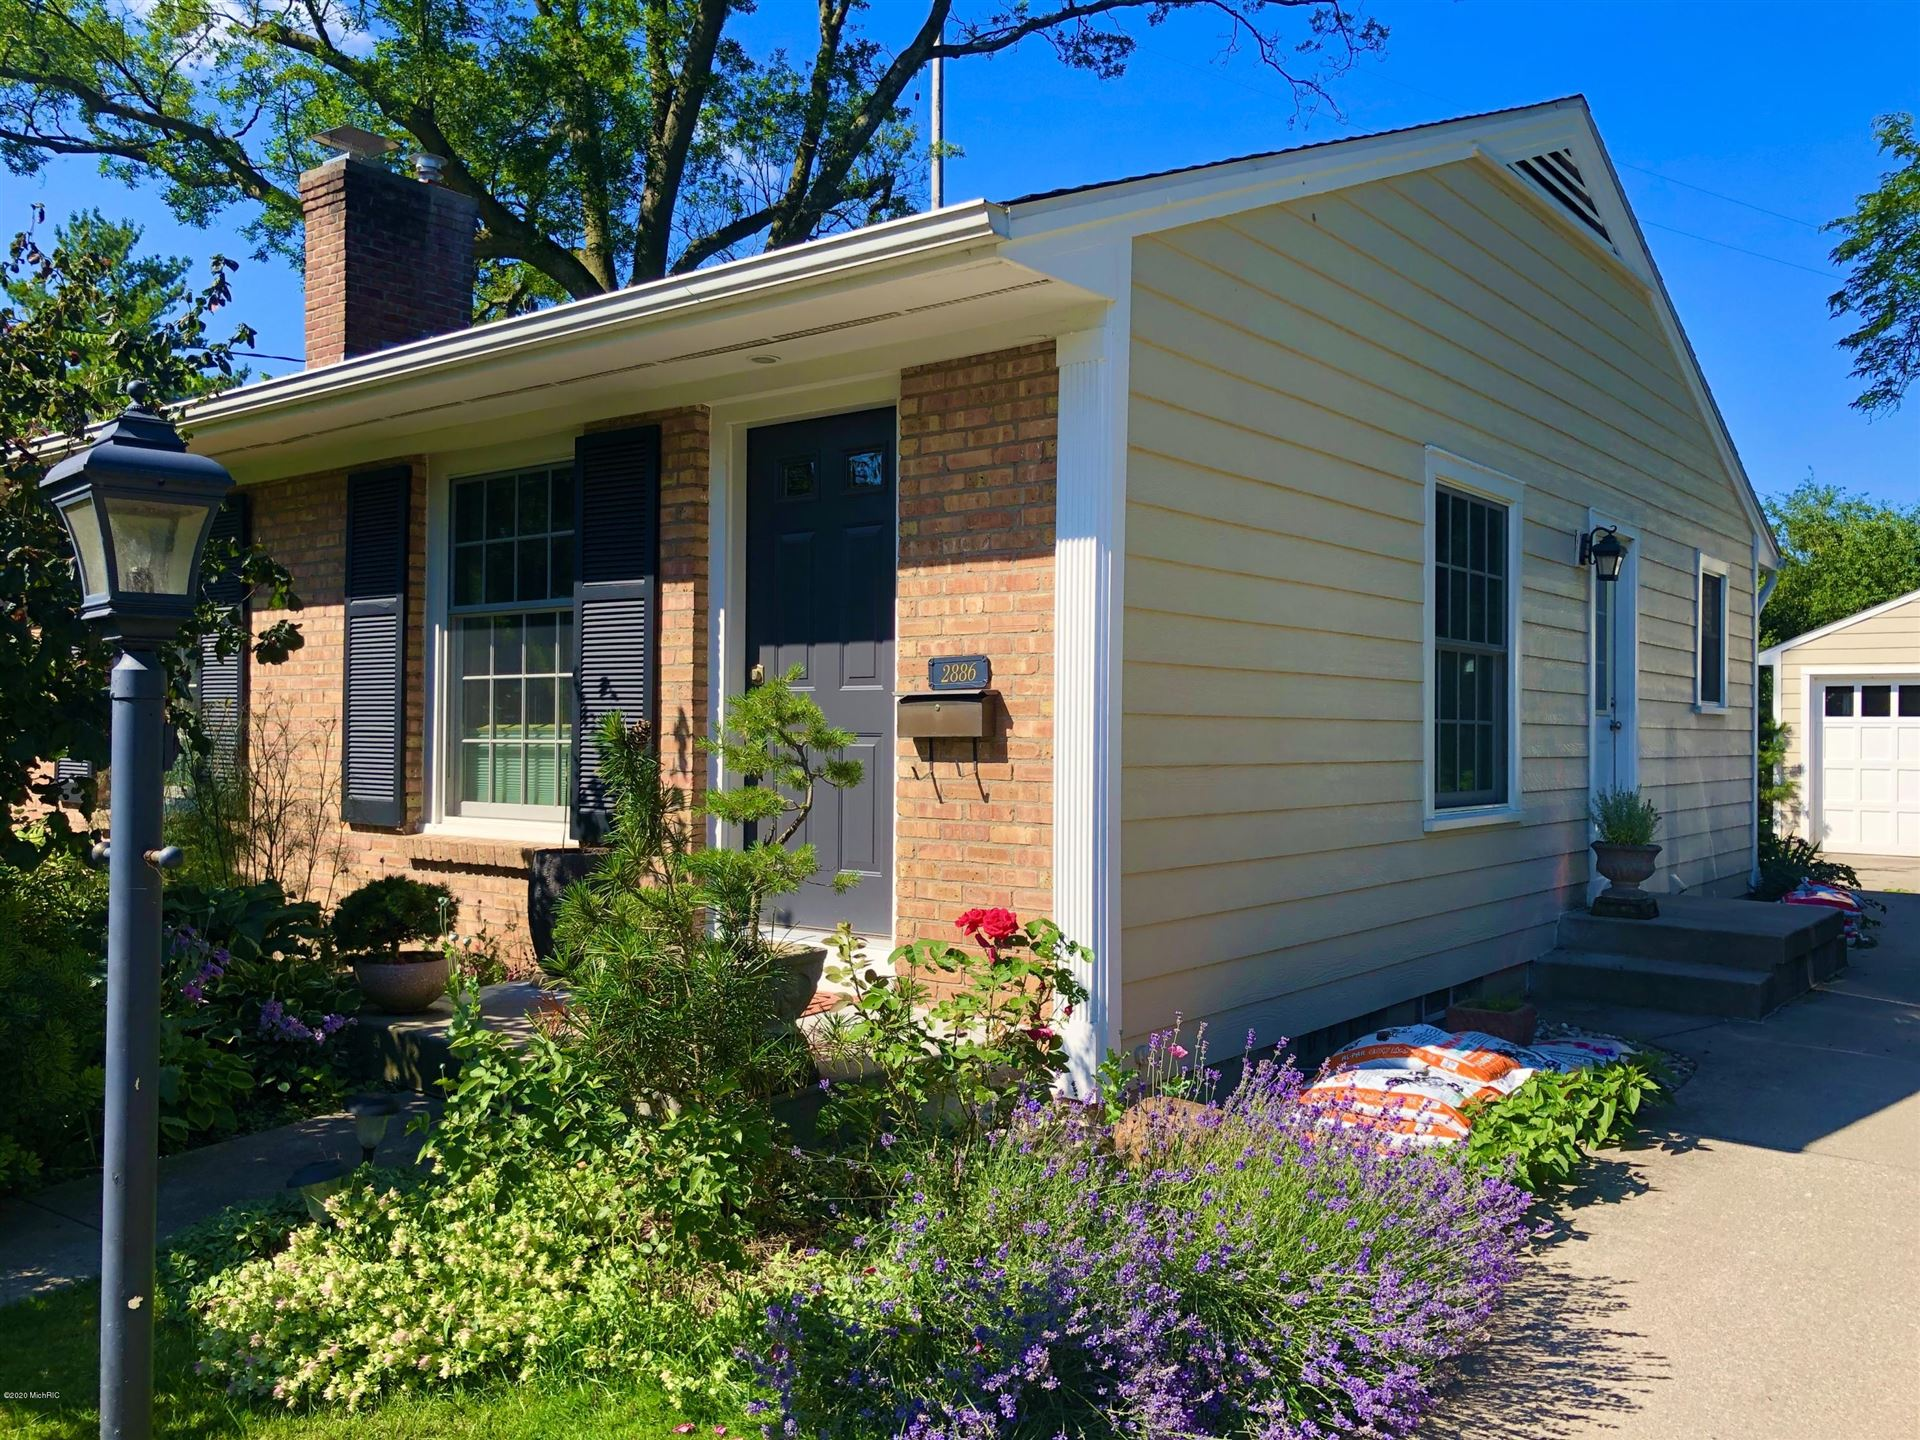 Photo of 2886 Lake Drive SE, East Grand Rapids, MI 49506 (MLS # 20026975)